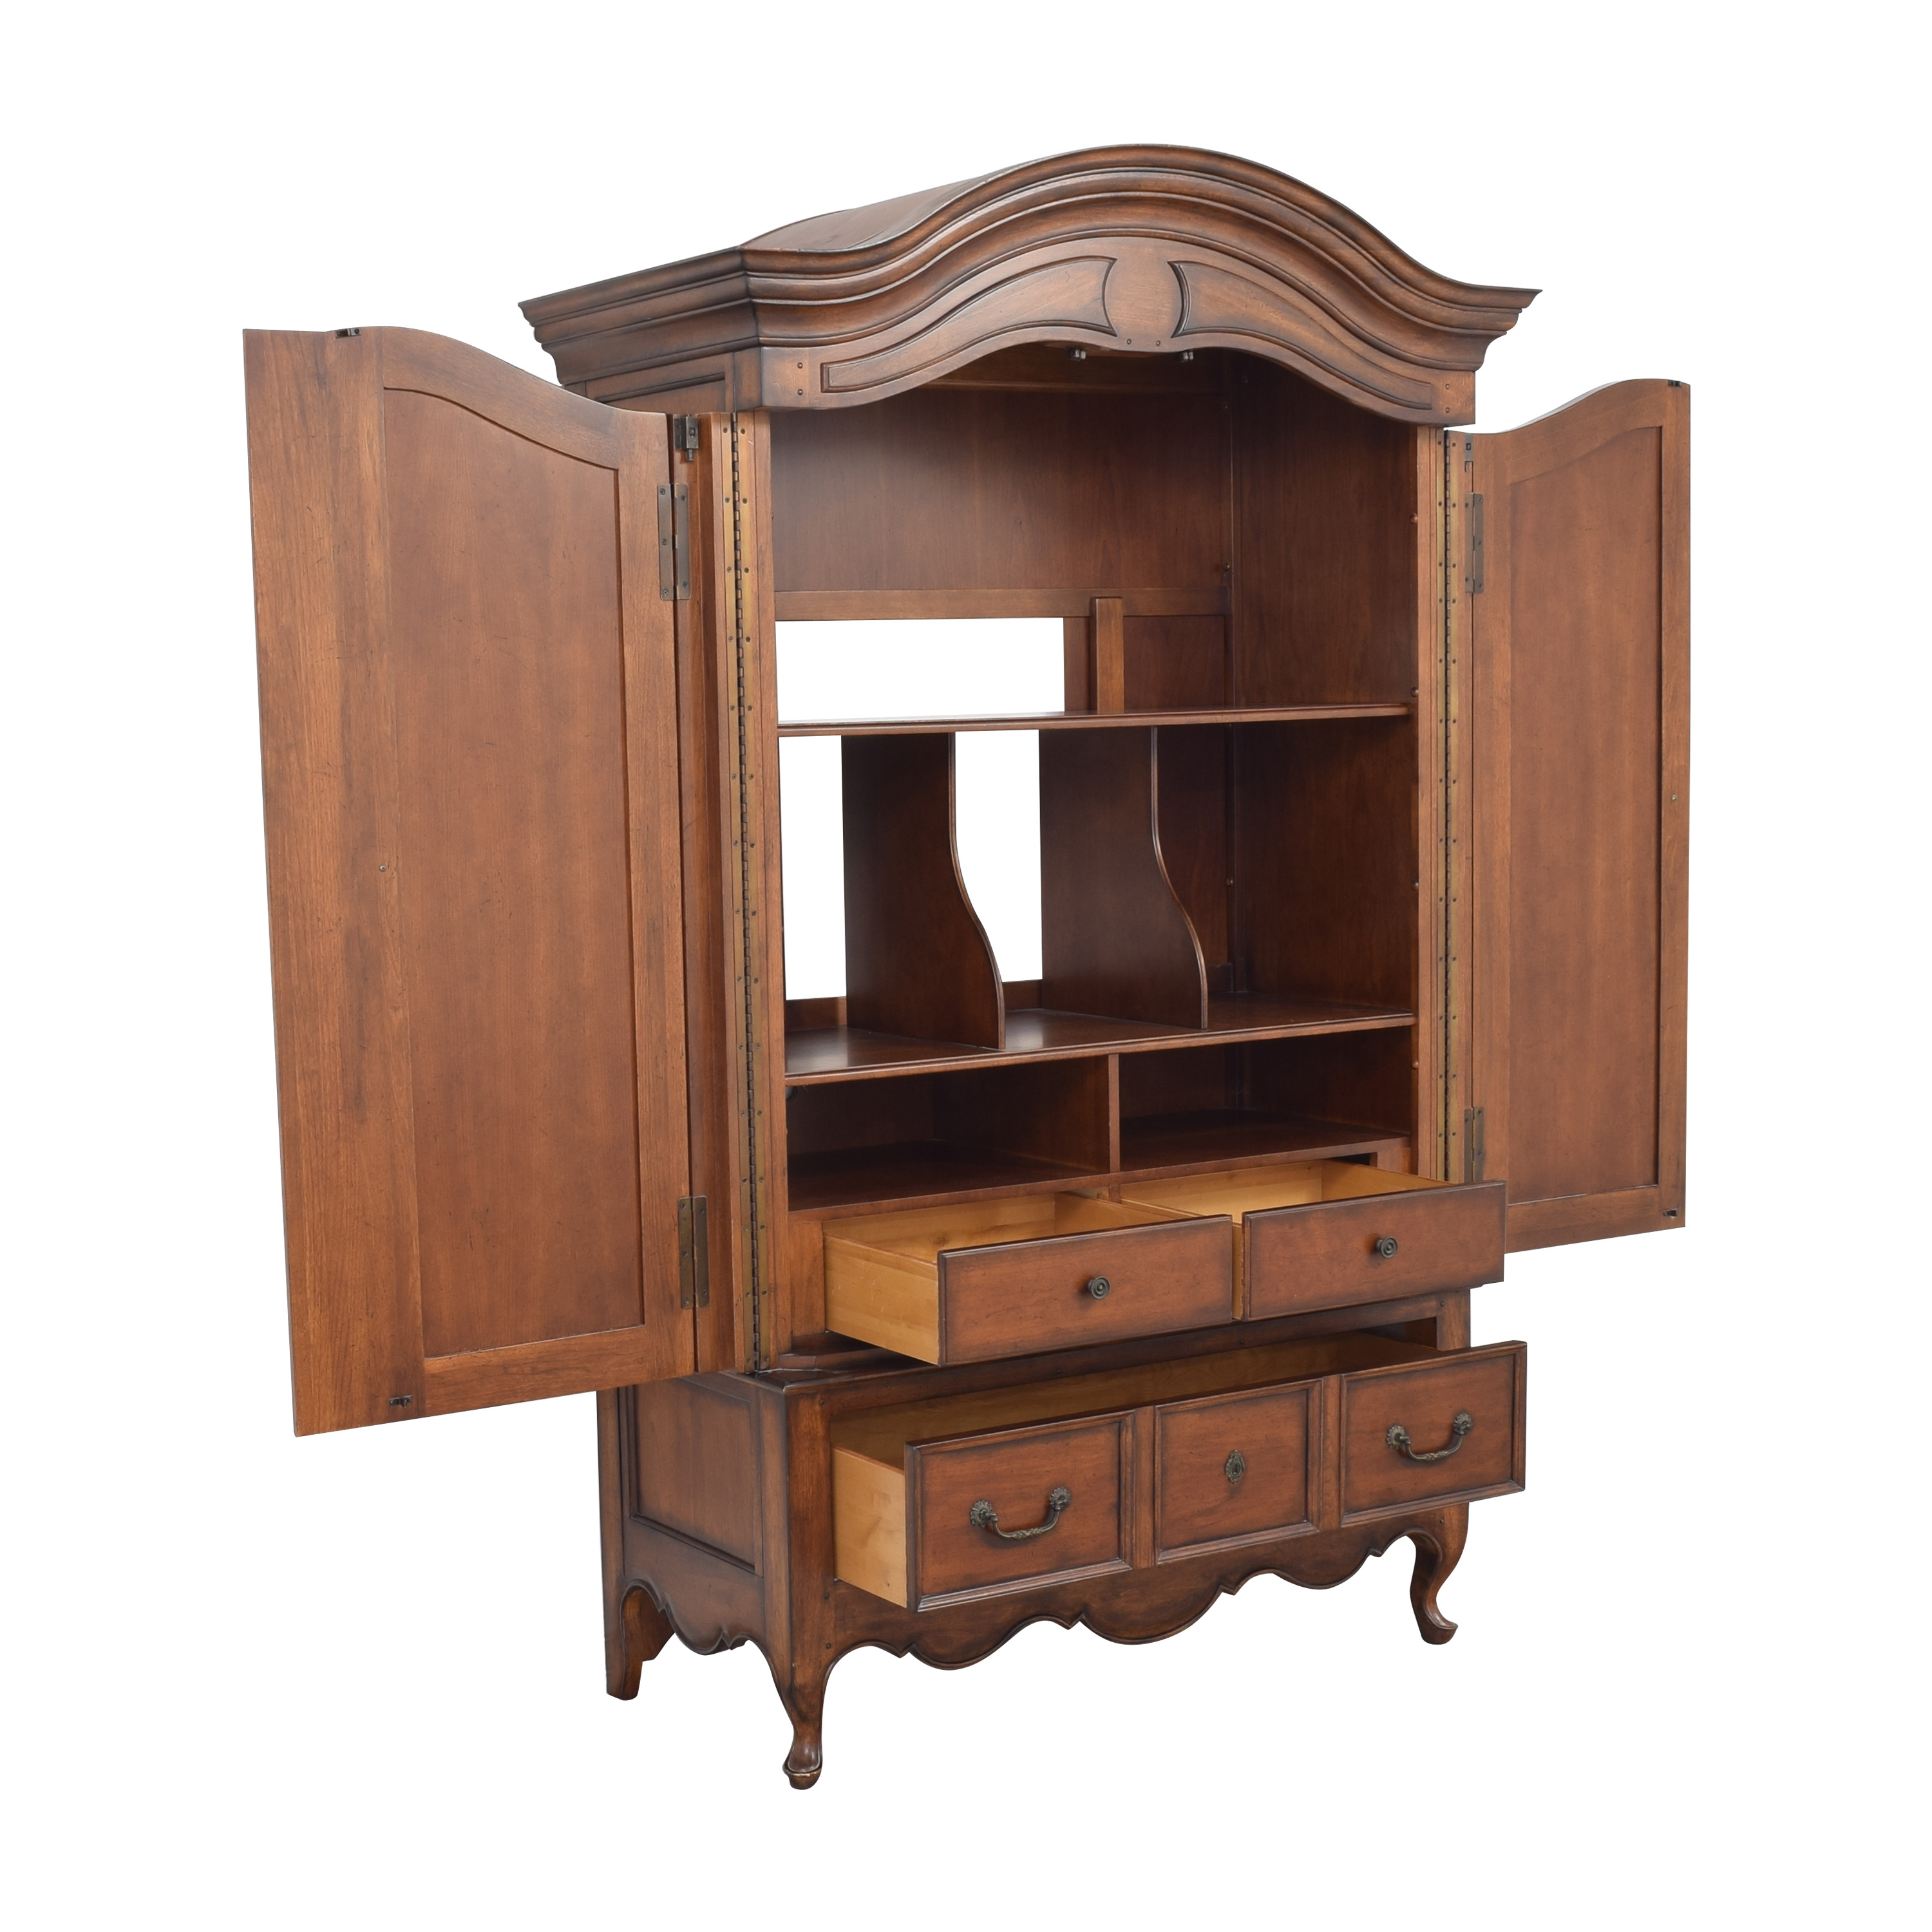 Fine Furniture Design Fine Furniture Design Media Armoire used